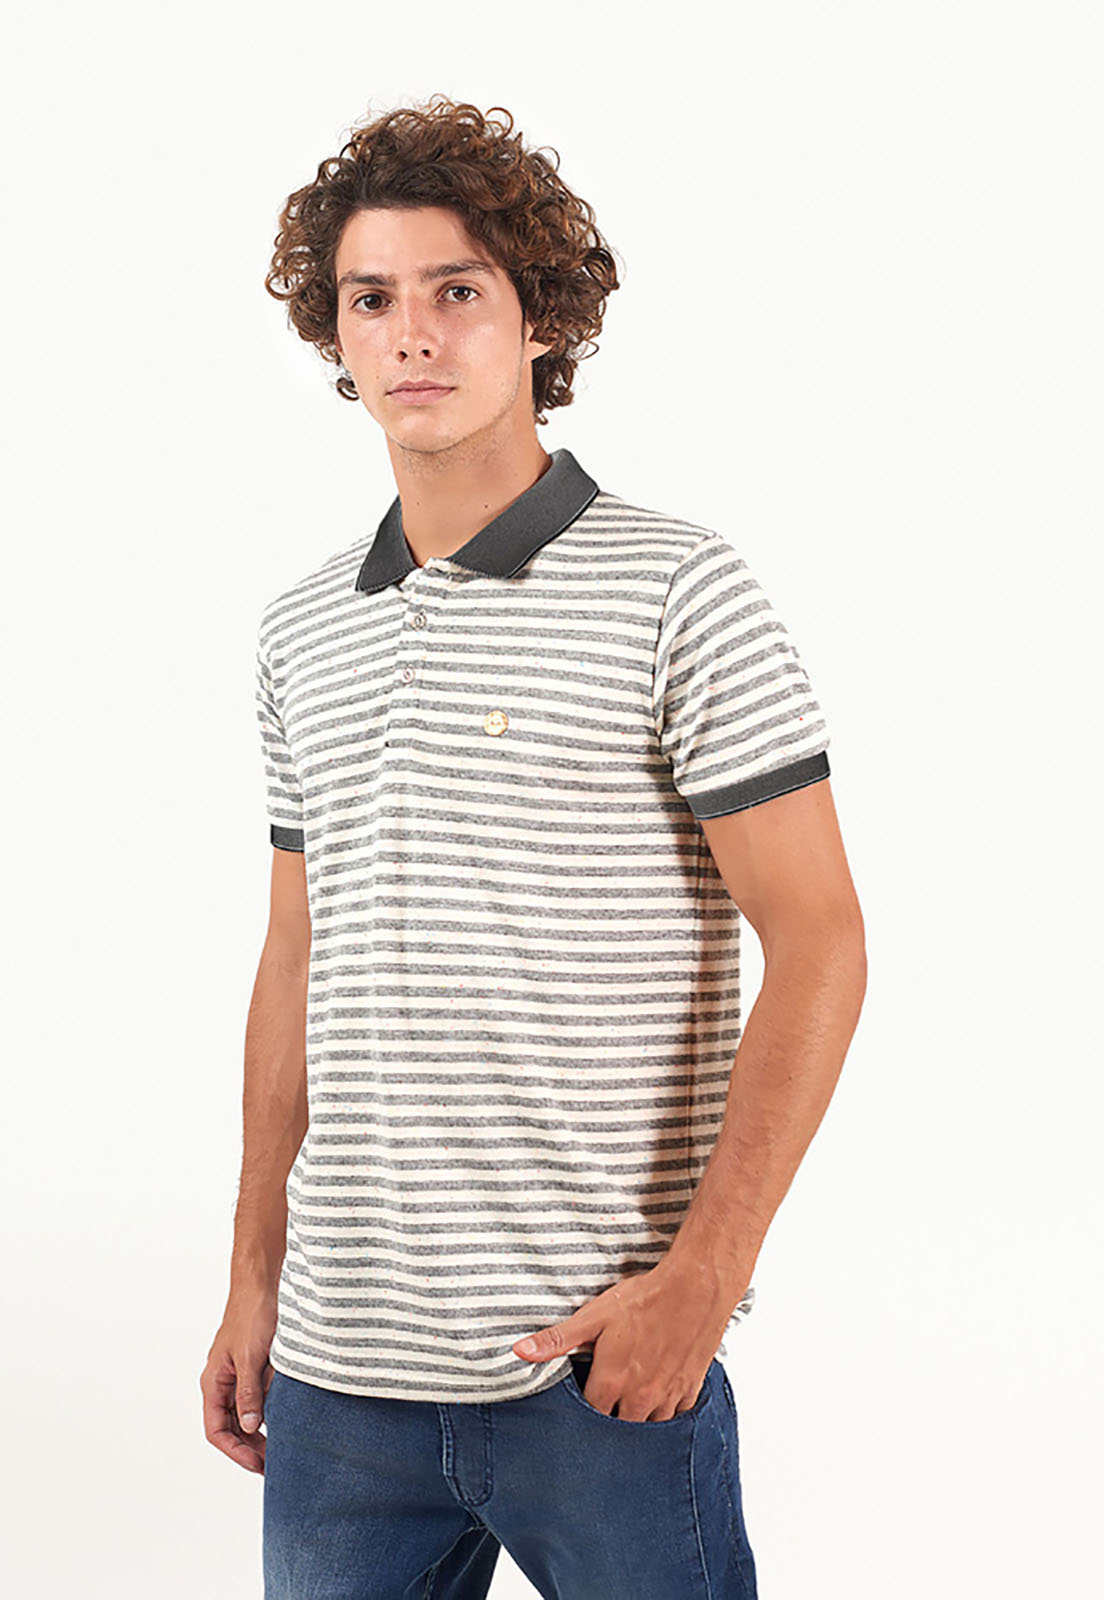 Polo Monte Carlo melty  - melty surf & Co.